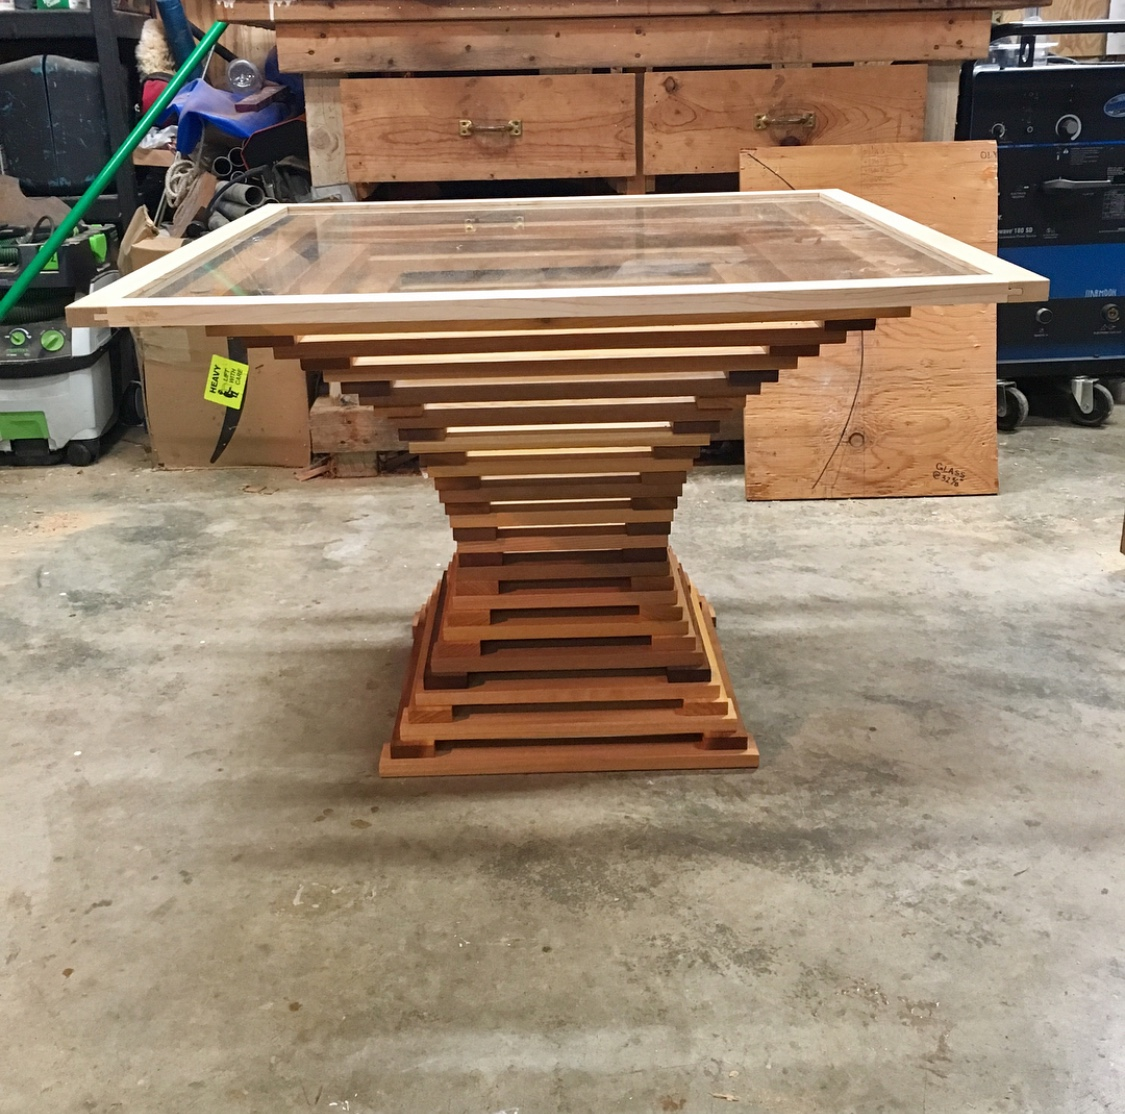 build details for custom designed table